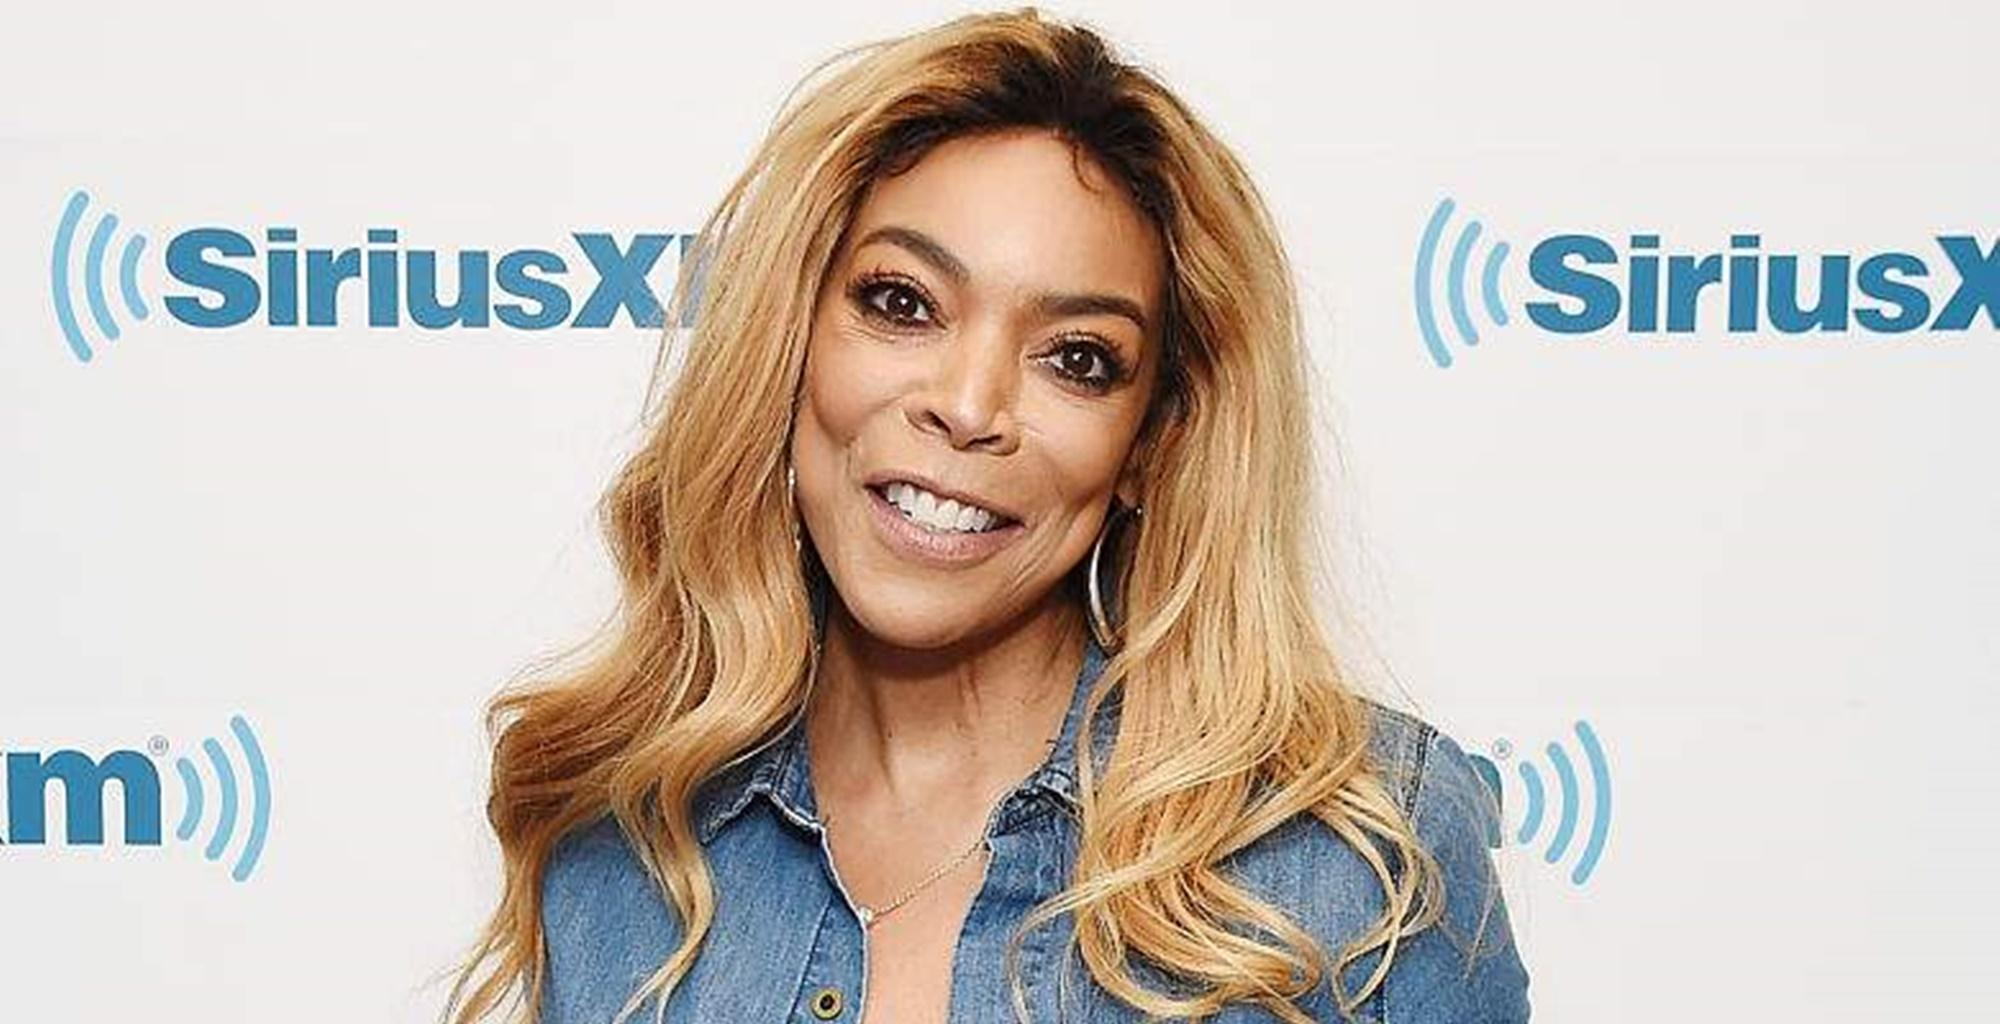 Wendy Williams Admits The Past Week Has Been Difficult After Her Husband Kevin Hunter Reportedly Welcomed A Baby With His Mistress, Sharina Hudson